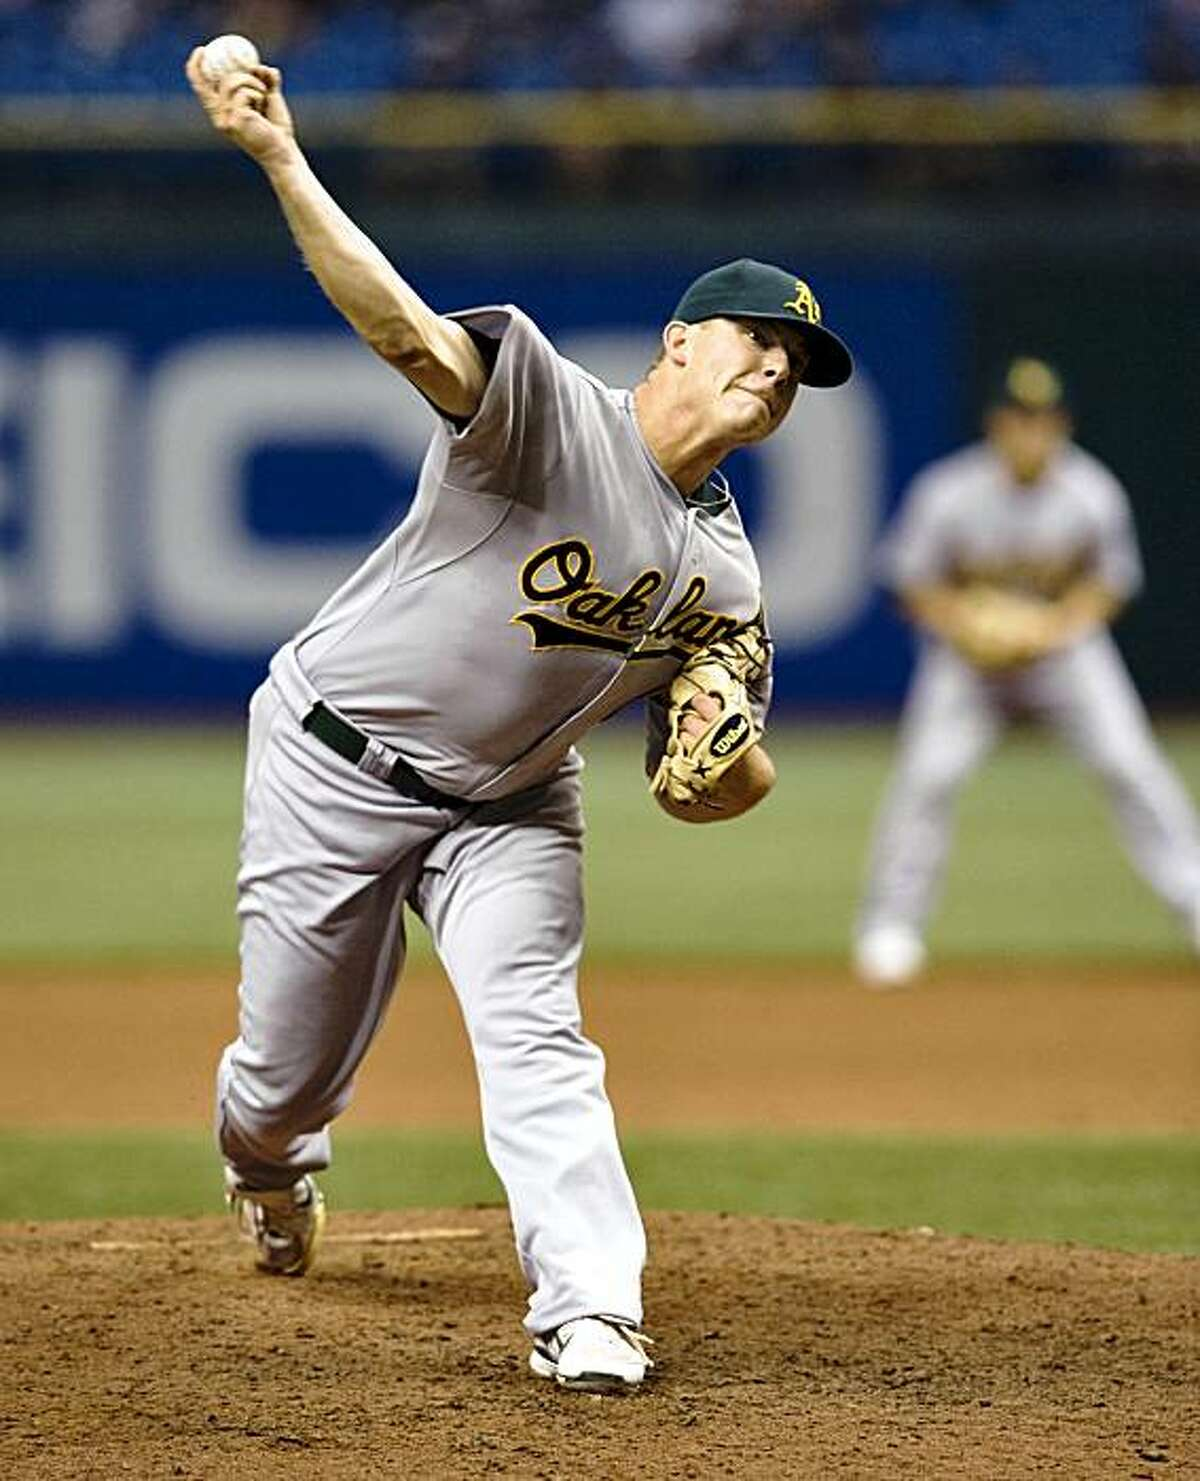 Andrew Bailey was an All-Star closer for the A's from 2009-2011. He is the Giants' new pitching coach.